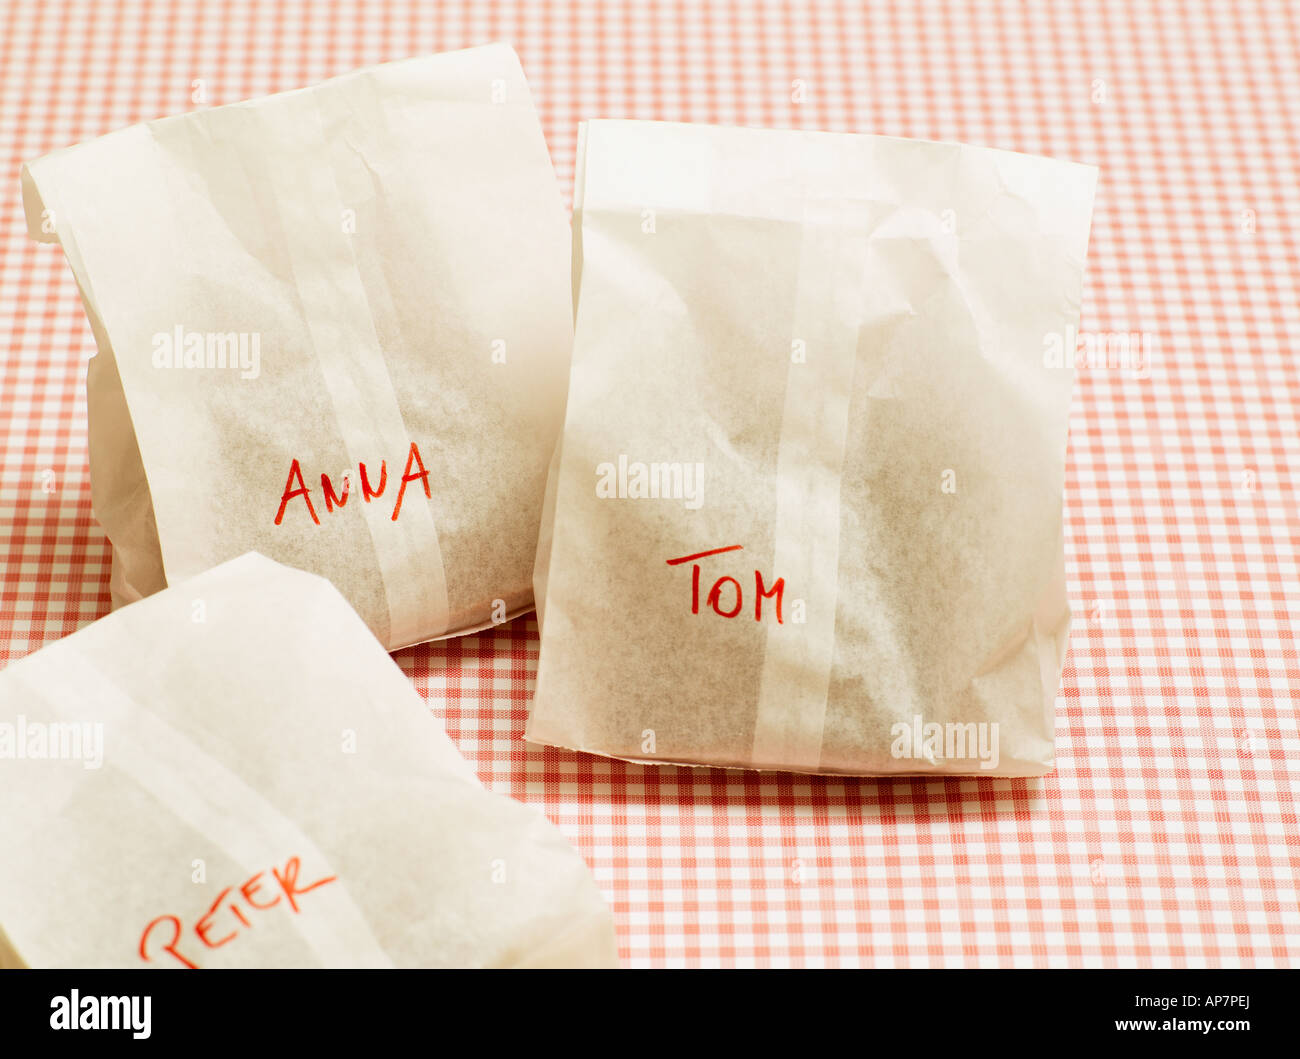 Packed lunches - Stock Image